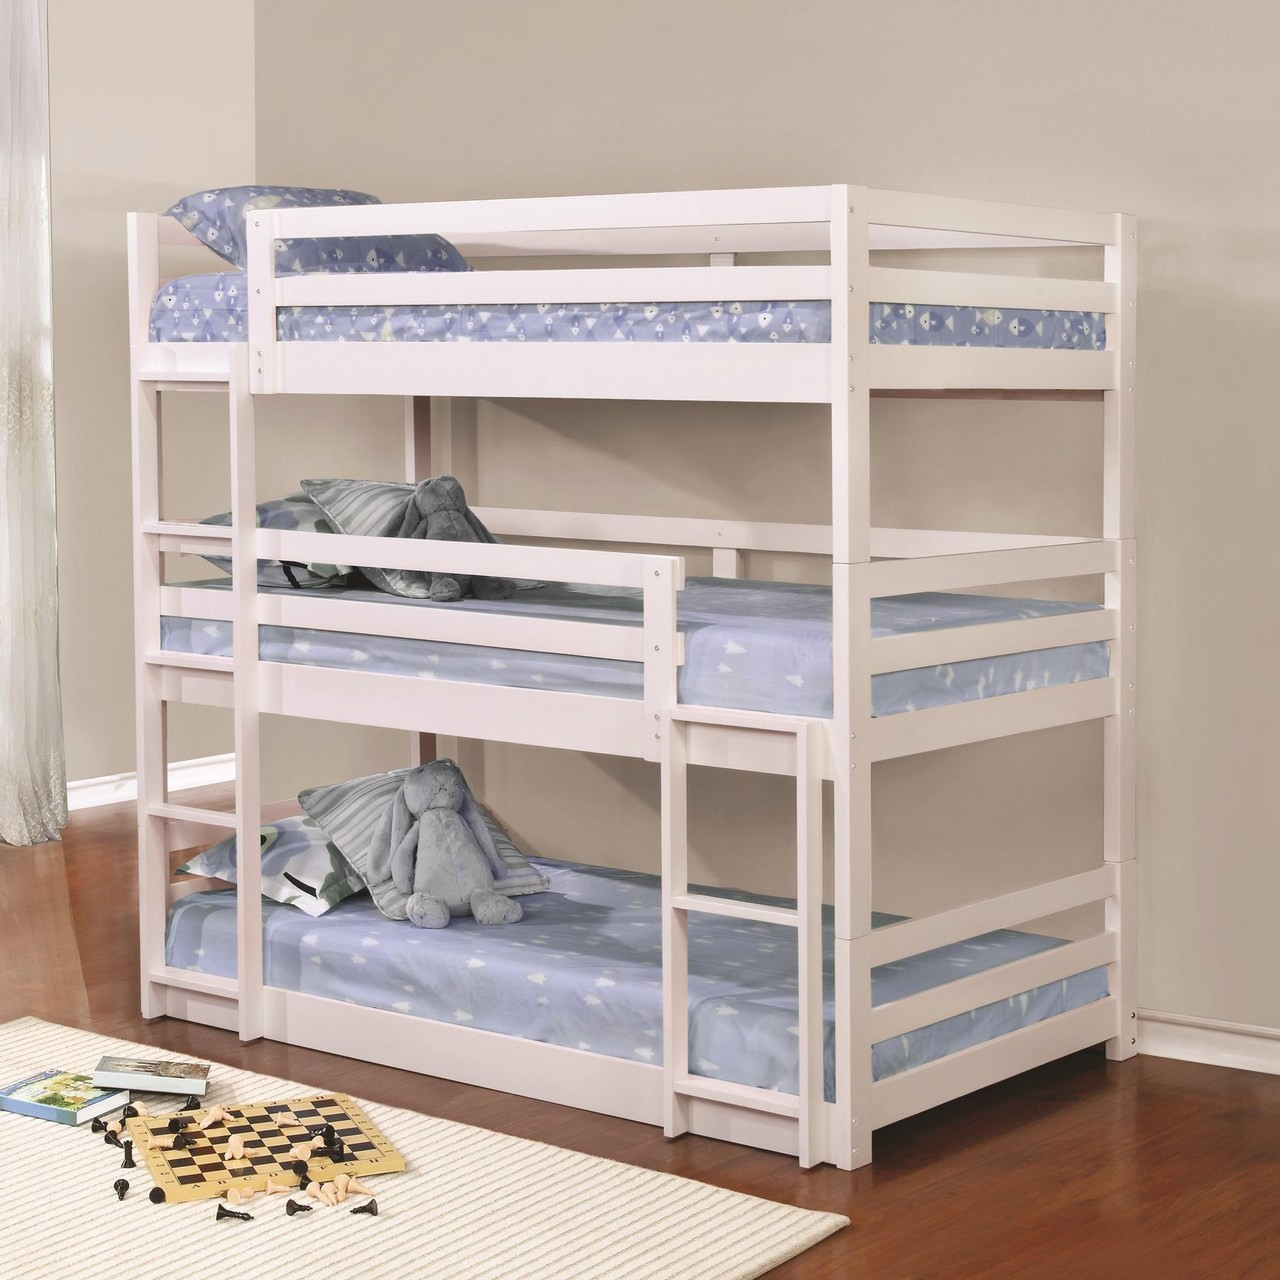 https://cdn3.bigcommerce.com/s-rtqvb44/products/509/images/1423/CR401302-b3-triple-white-bunk-bed__57773.1483657894.1280.1280.jpg?c=2